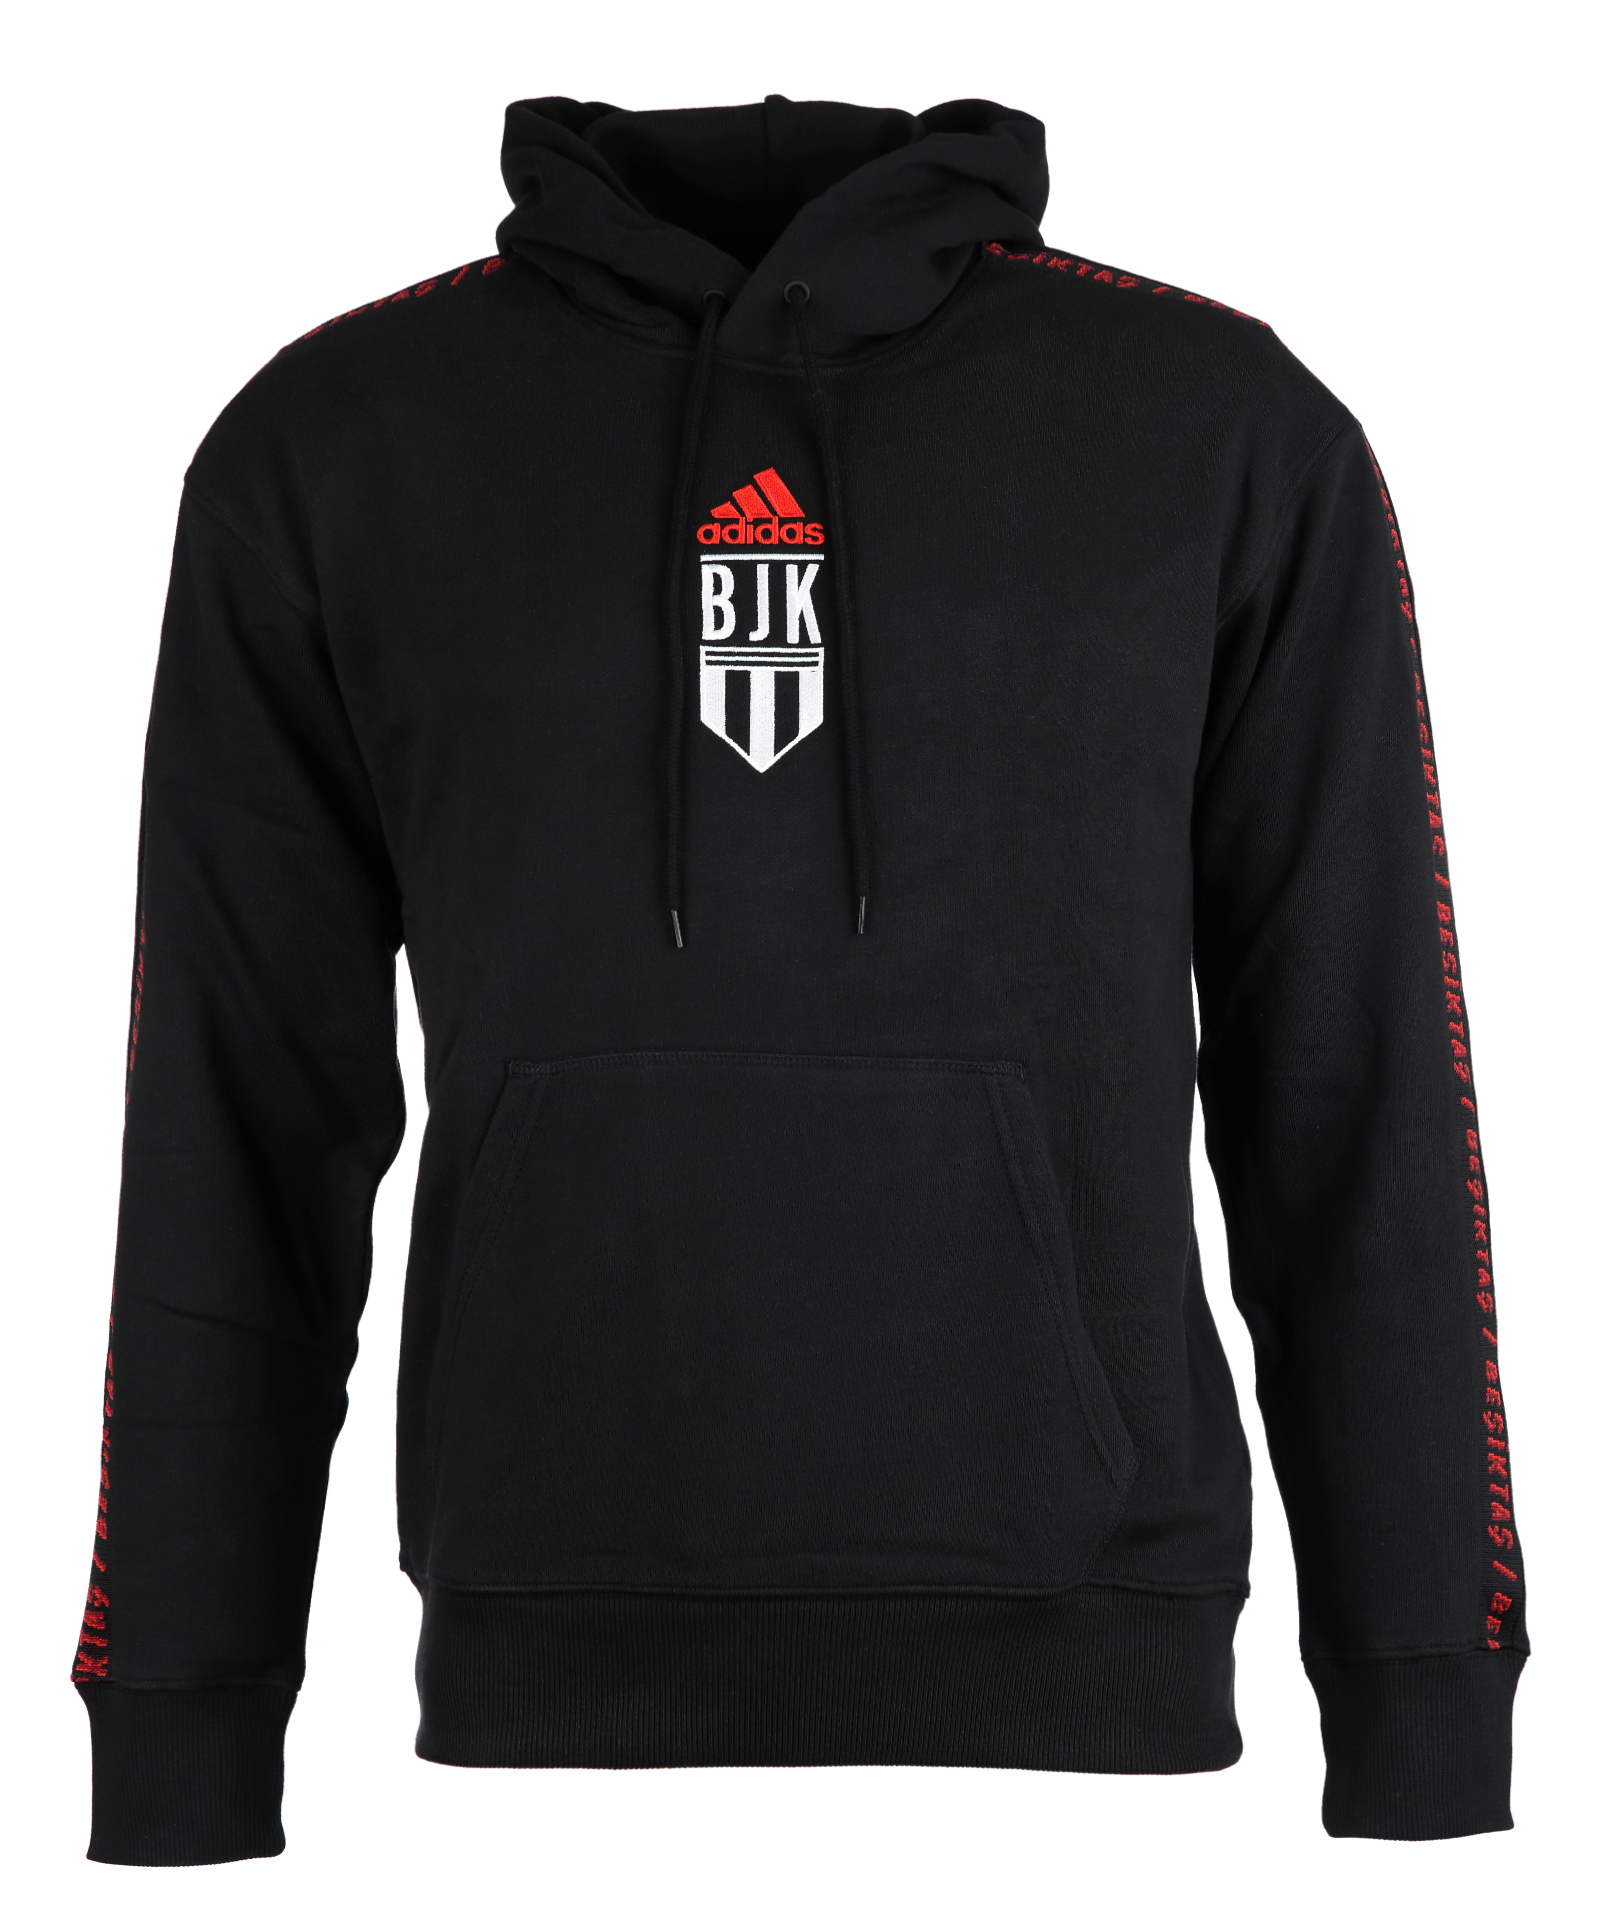 BJK X ADIDAS CULTURE COLLECTION SWEATSHIRT 20-21 FR4109